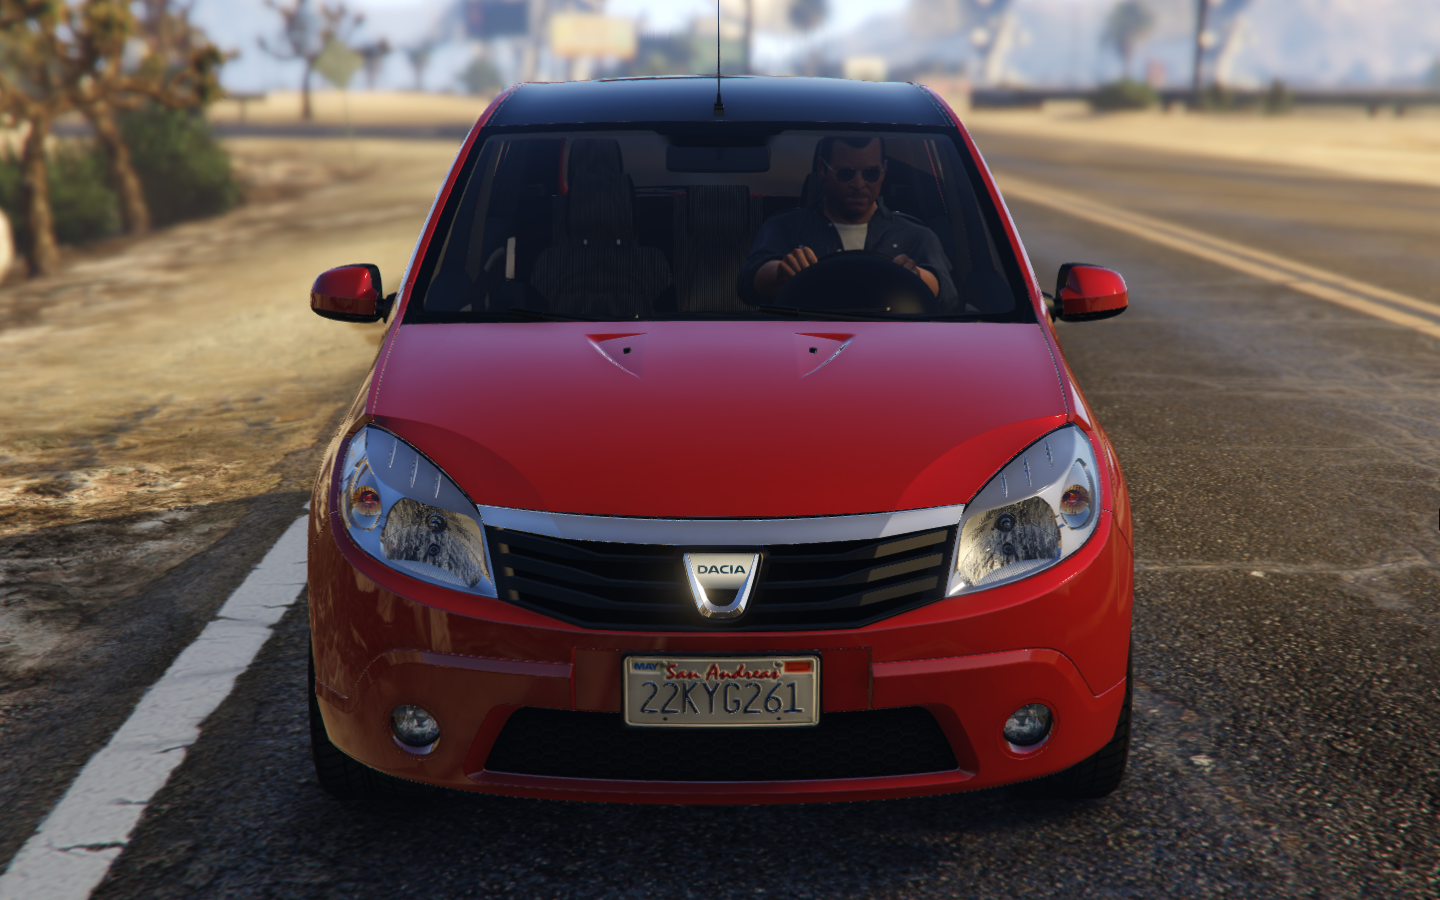 dacia sandero 2008 vehicules pour gta v sur gta modding. Black Bedroom Furniture Sets. Home Design Ideas